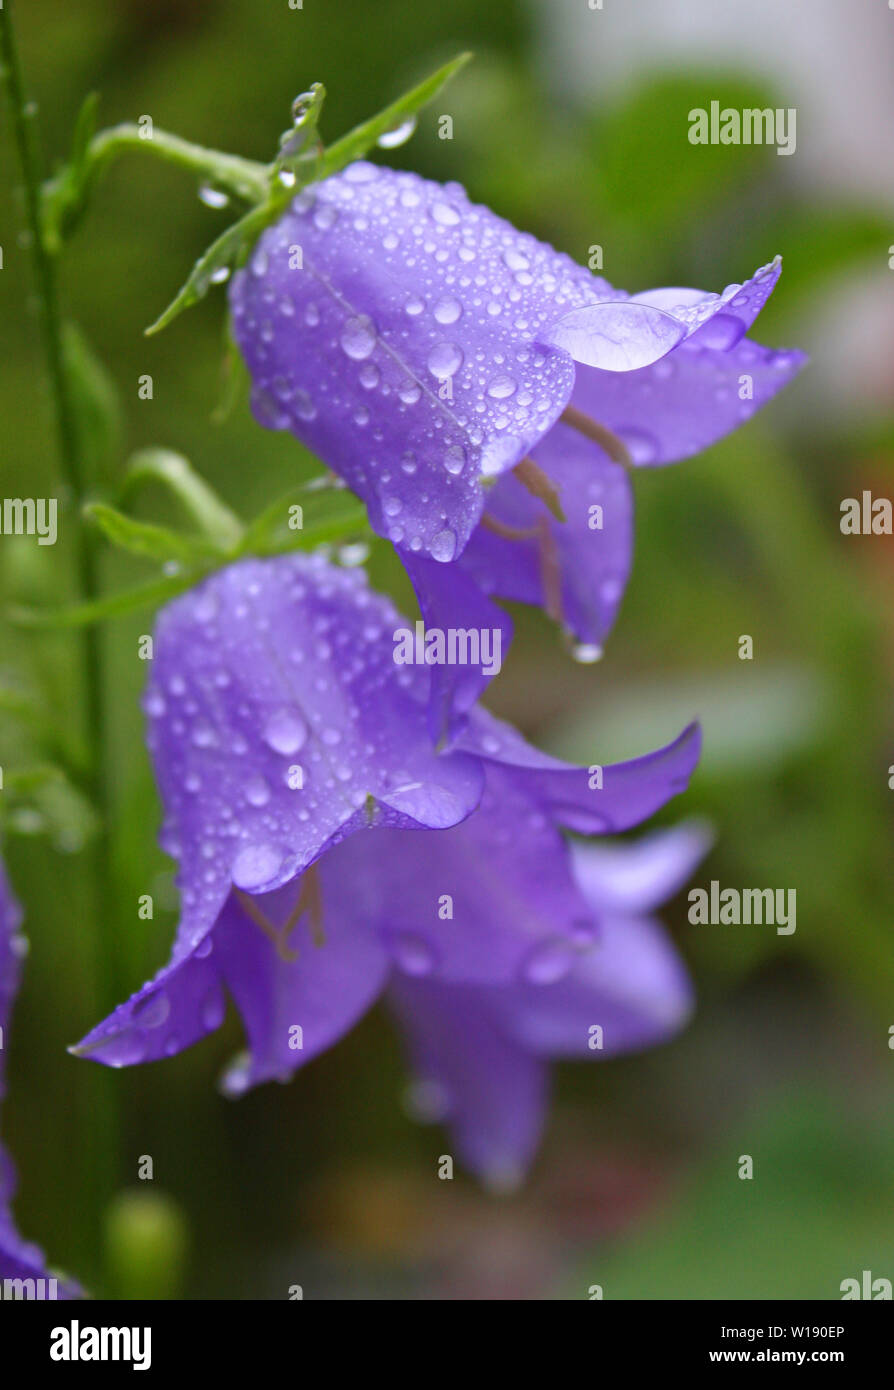 blossom,campanula,bellflower family - Stock Image